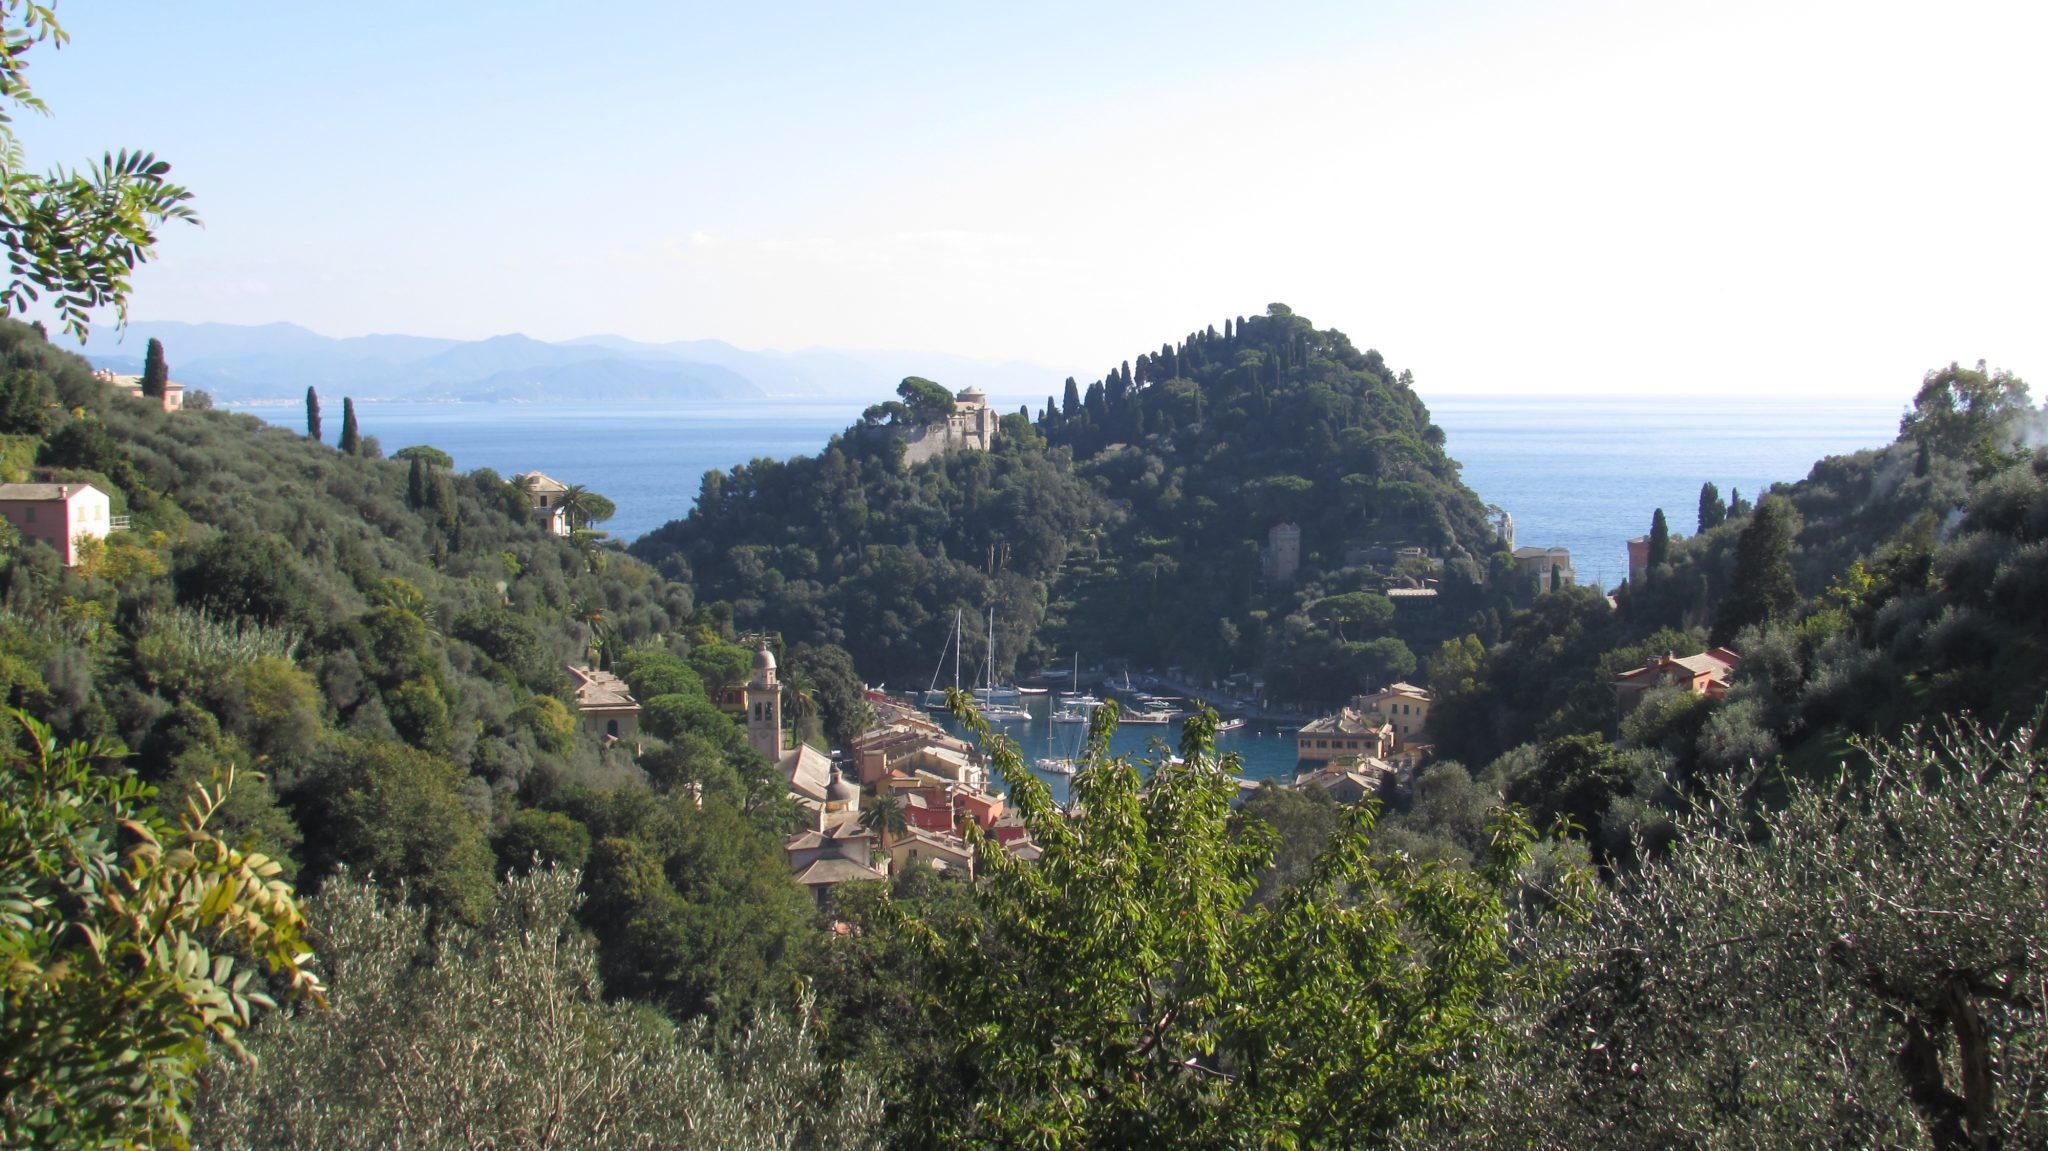 The amazing view of Portofino from the aromatic herbs path